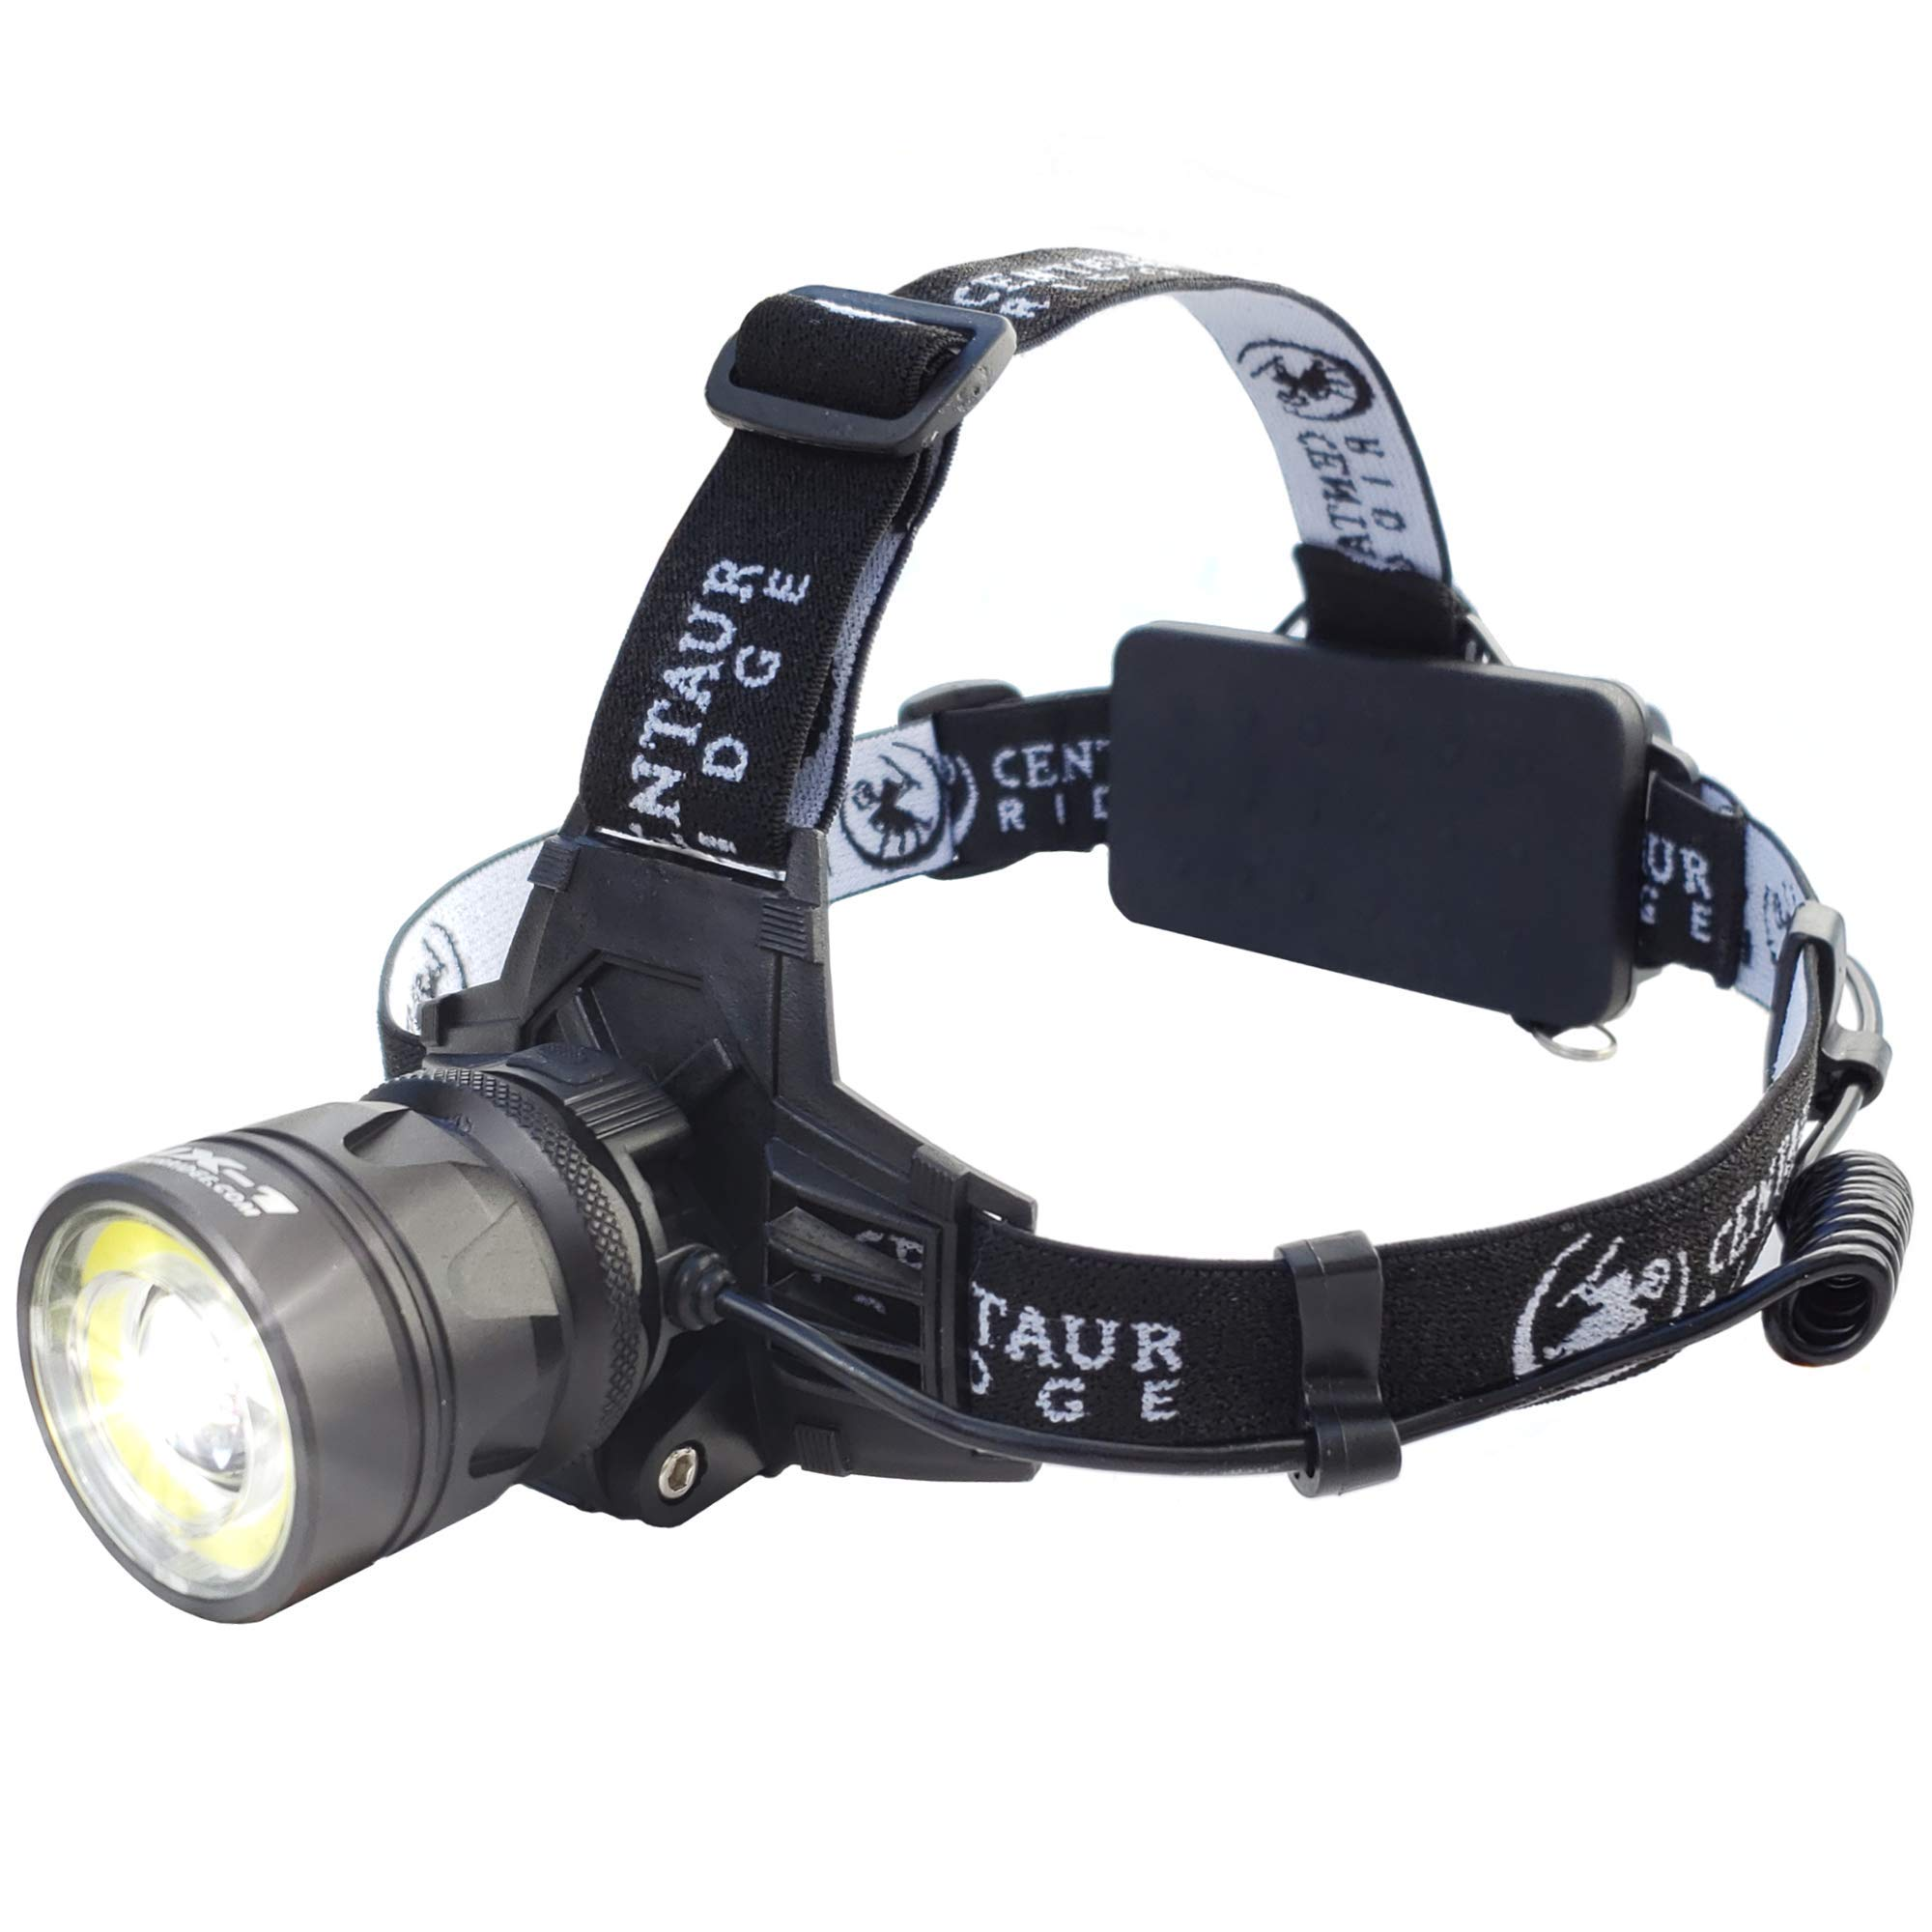 Centaur Ridge Headlamp - Xtreme Bright, 1000 Lumen CREE LED, Zoomable, USB Rechargeable | Best Flashlight for Camping, Hiking, Running, Work by Centaur Ridge (Image #1)